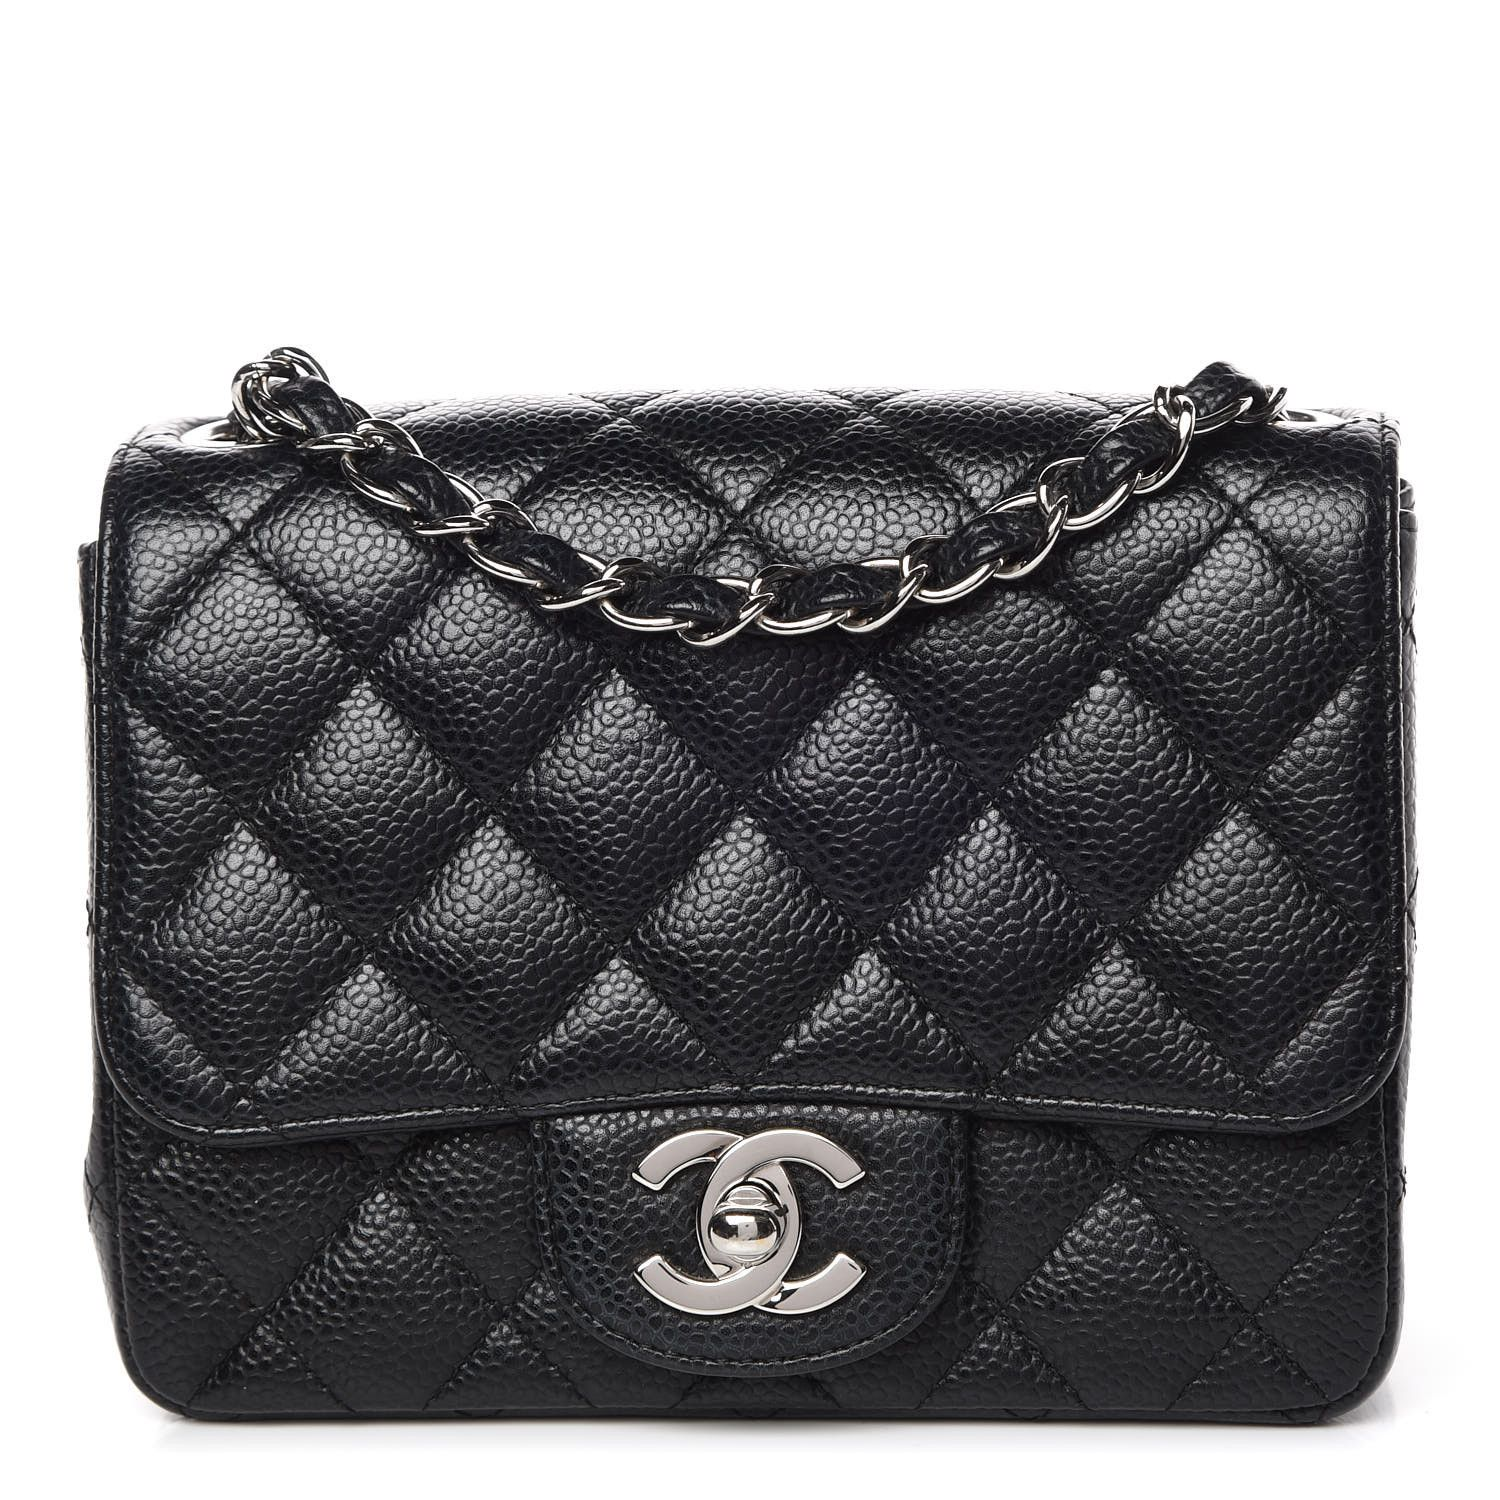 Chanel Caviar Quilted Mini Square Flap Black Chanel Mini Square Chanel Mini Flap Bag Chanel Mini Flap Black